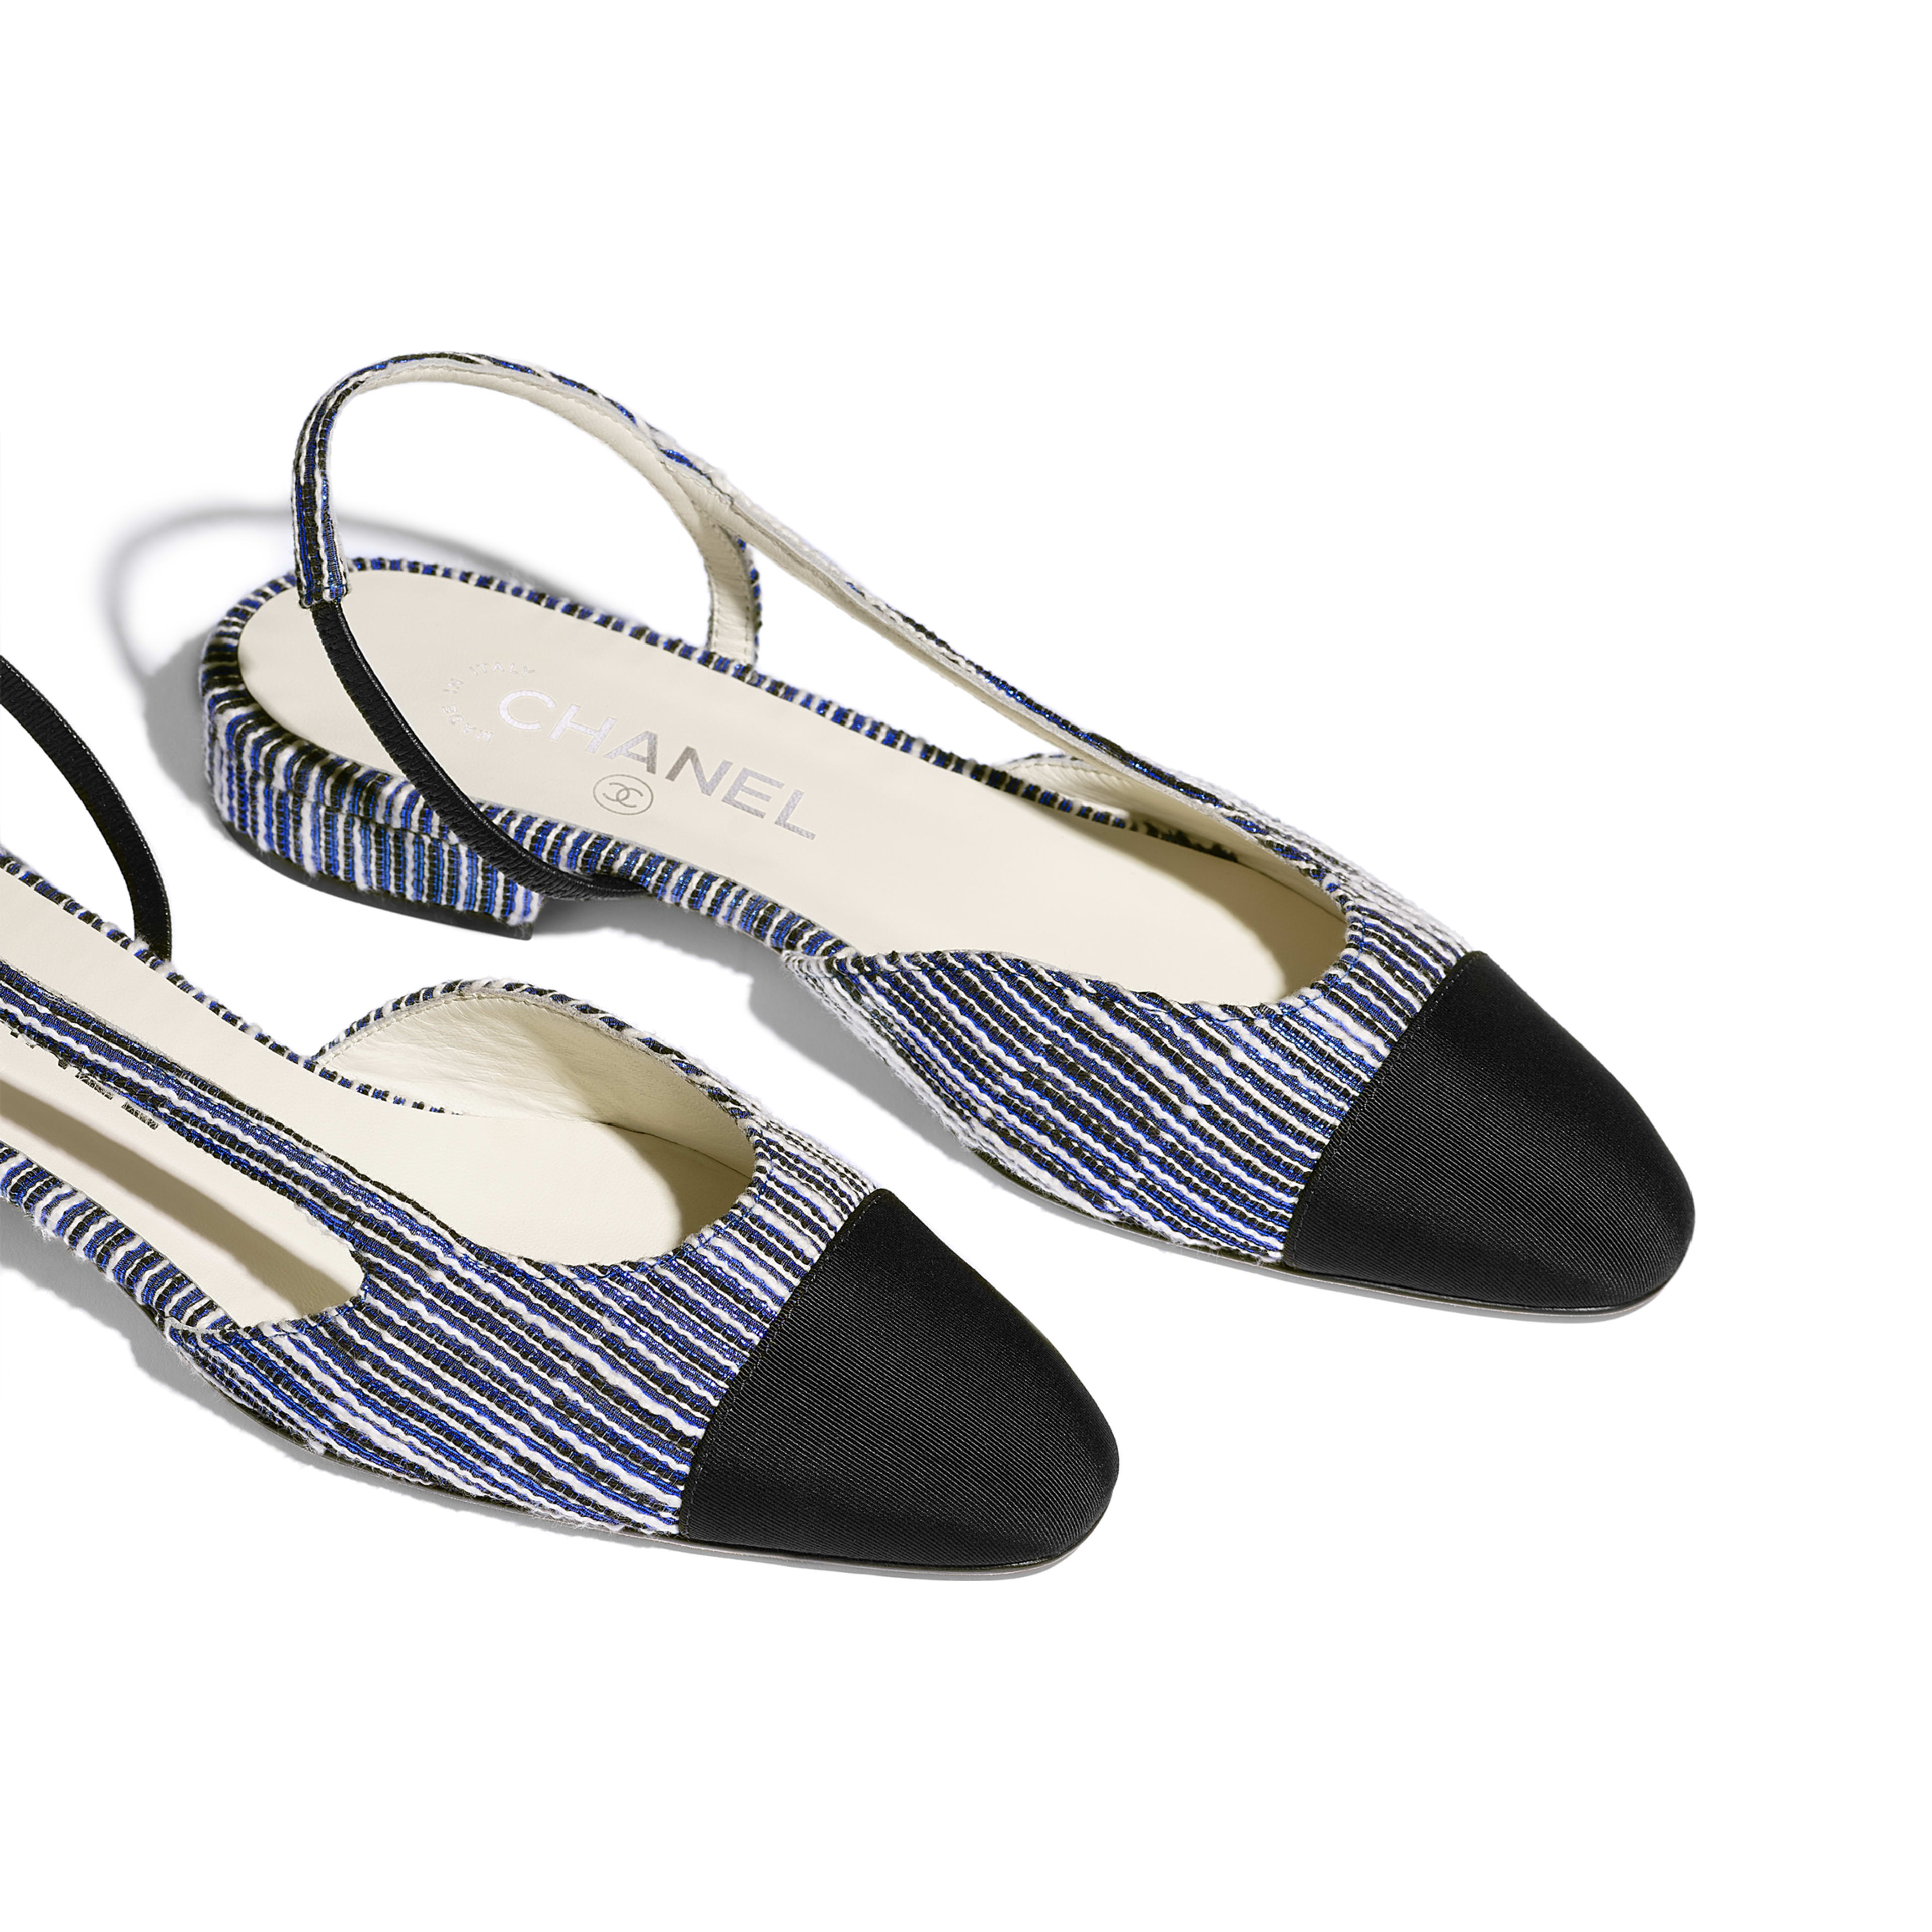 Slingbacks - White, Blue, Silver & Black - Tweed & Grosgrain - Other view - see full sized version